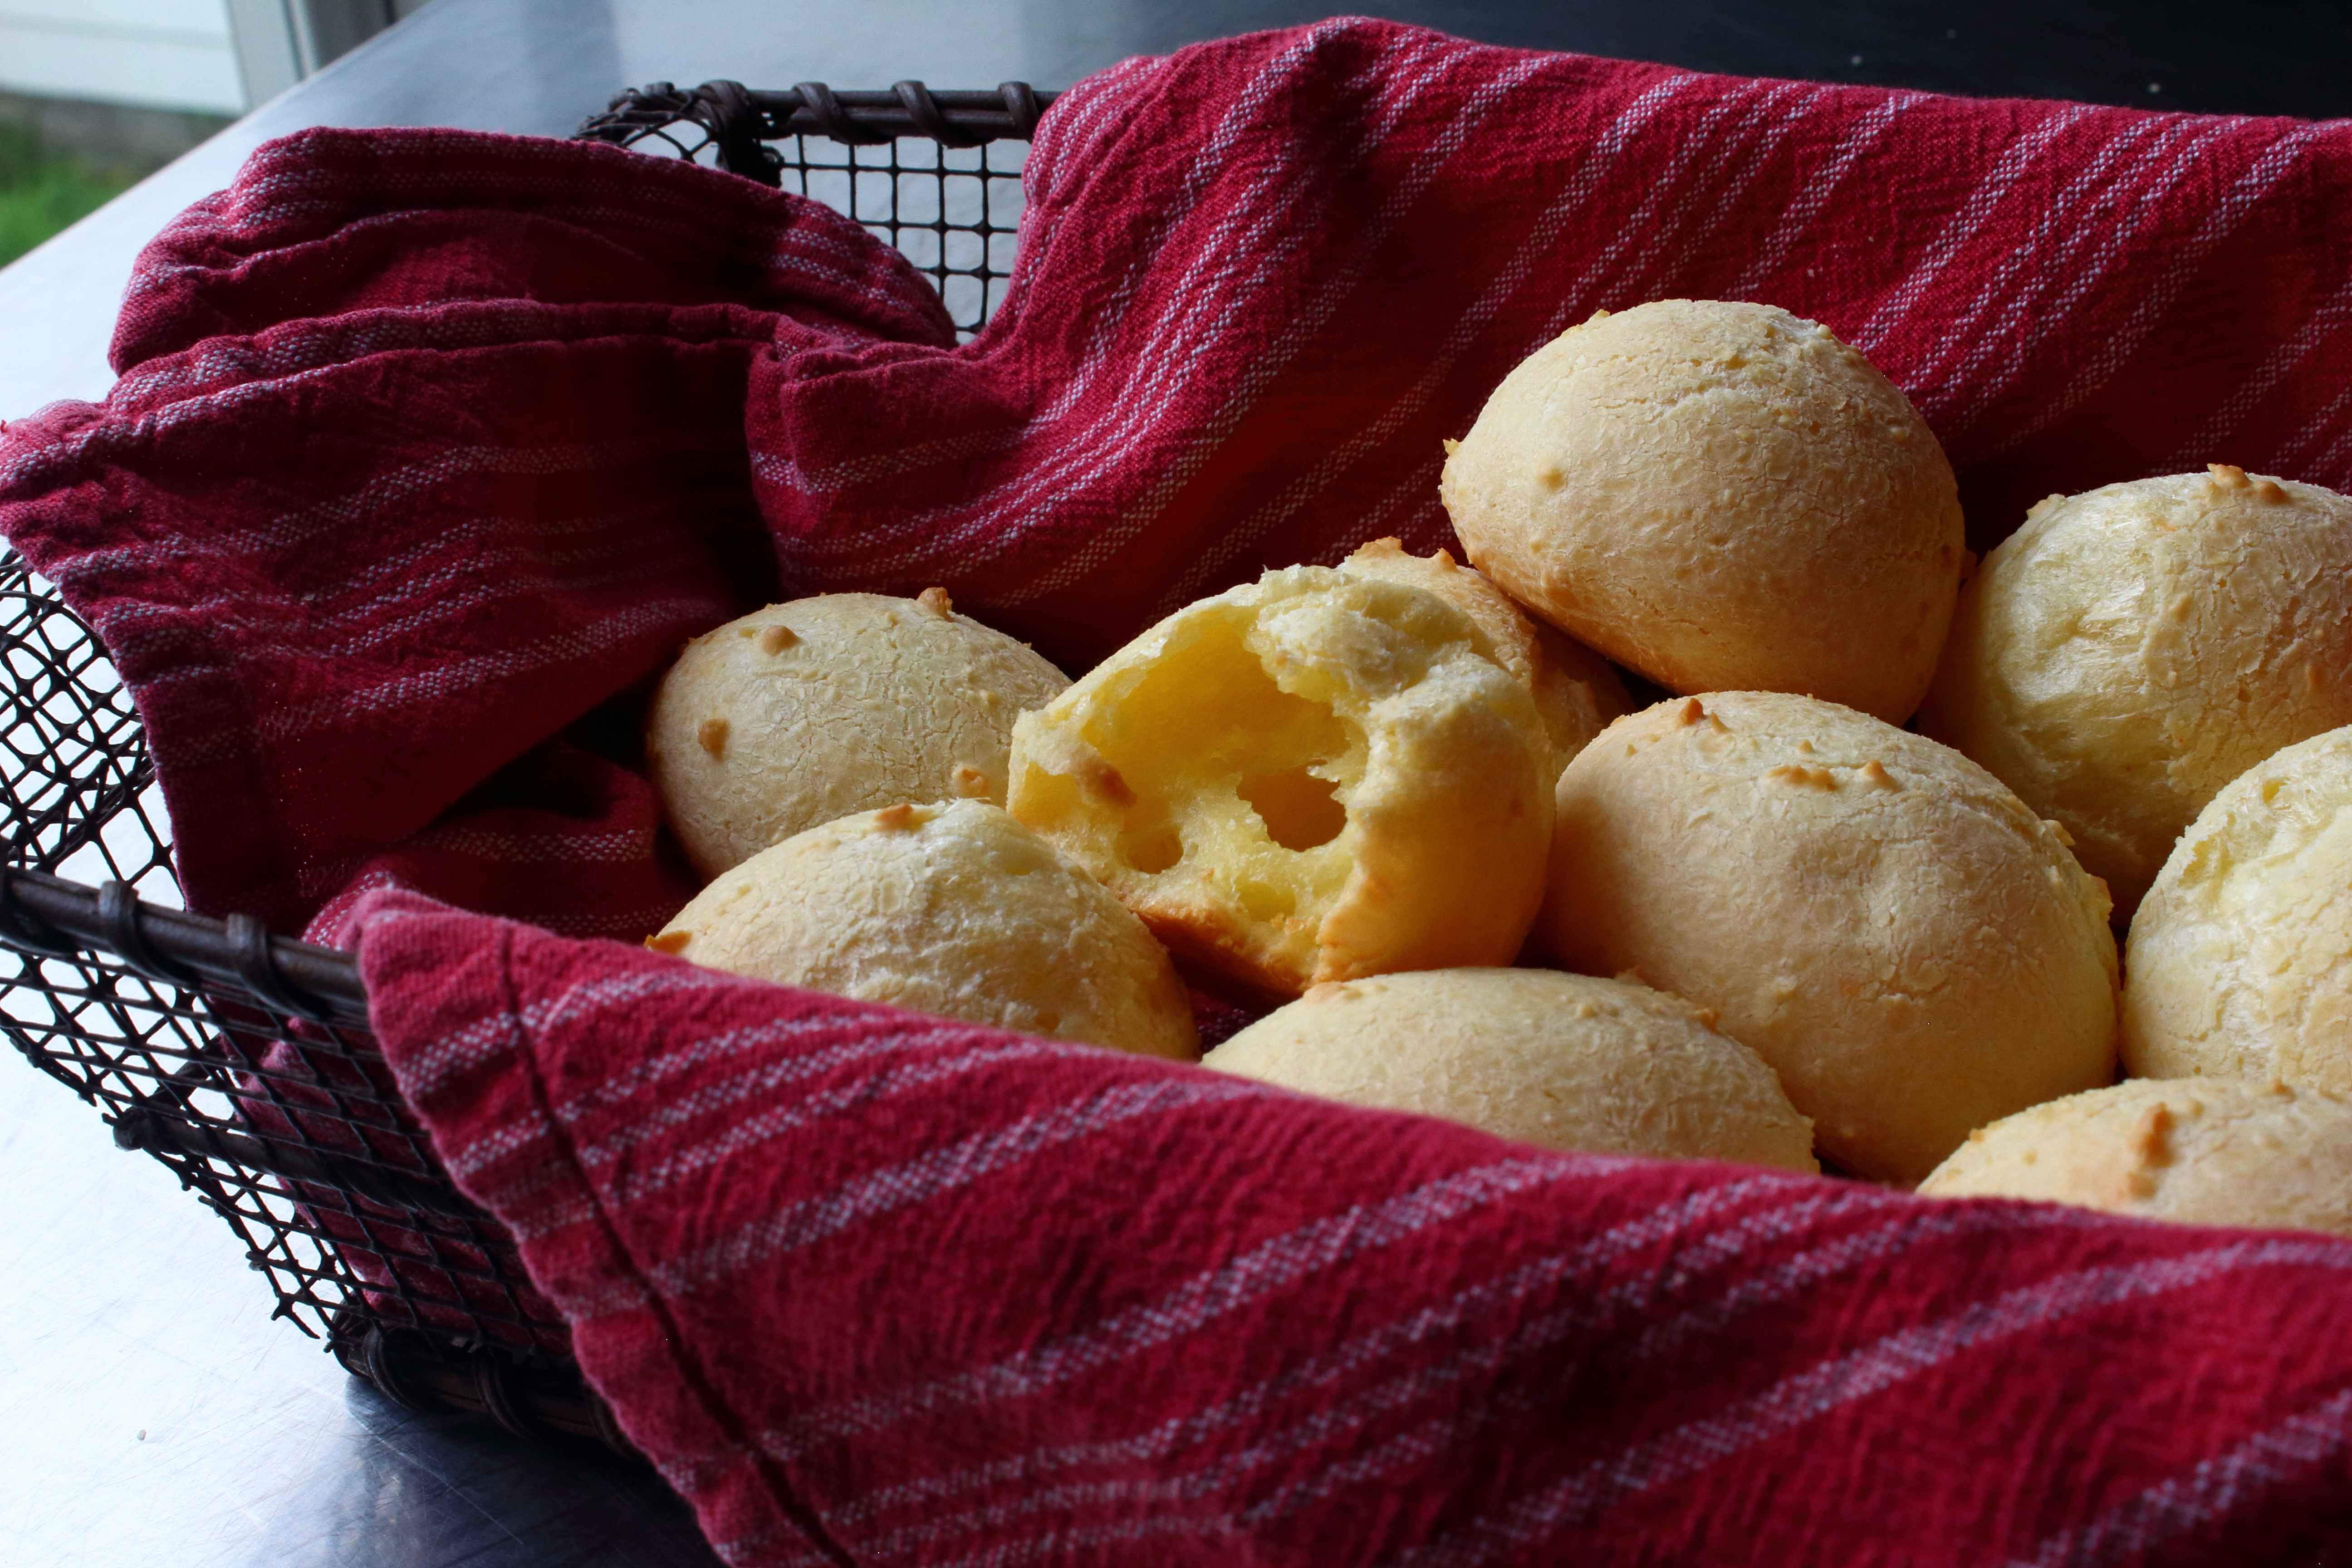 Chef John's Brazilian Cheese Bread (Pao de Queijo)